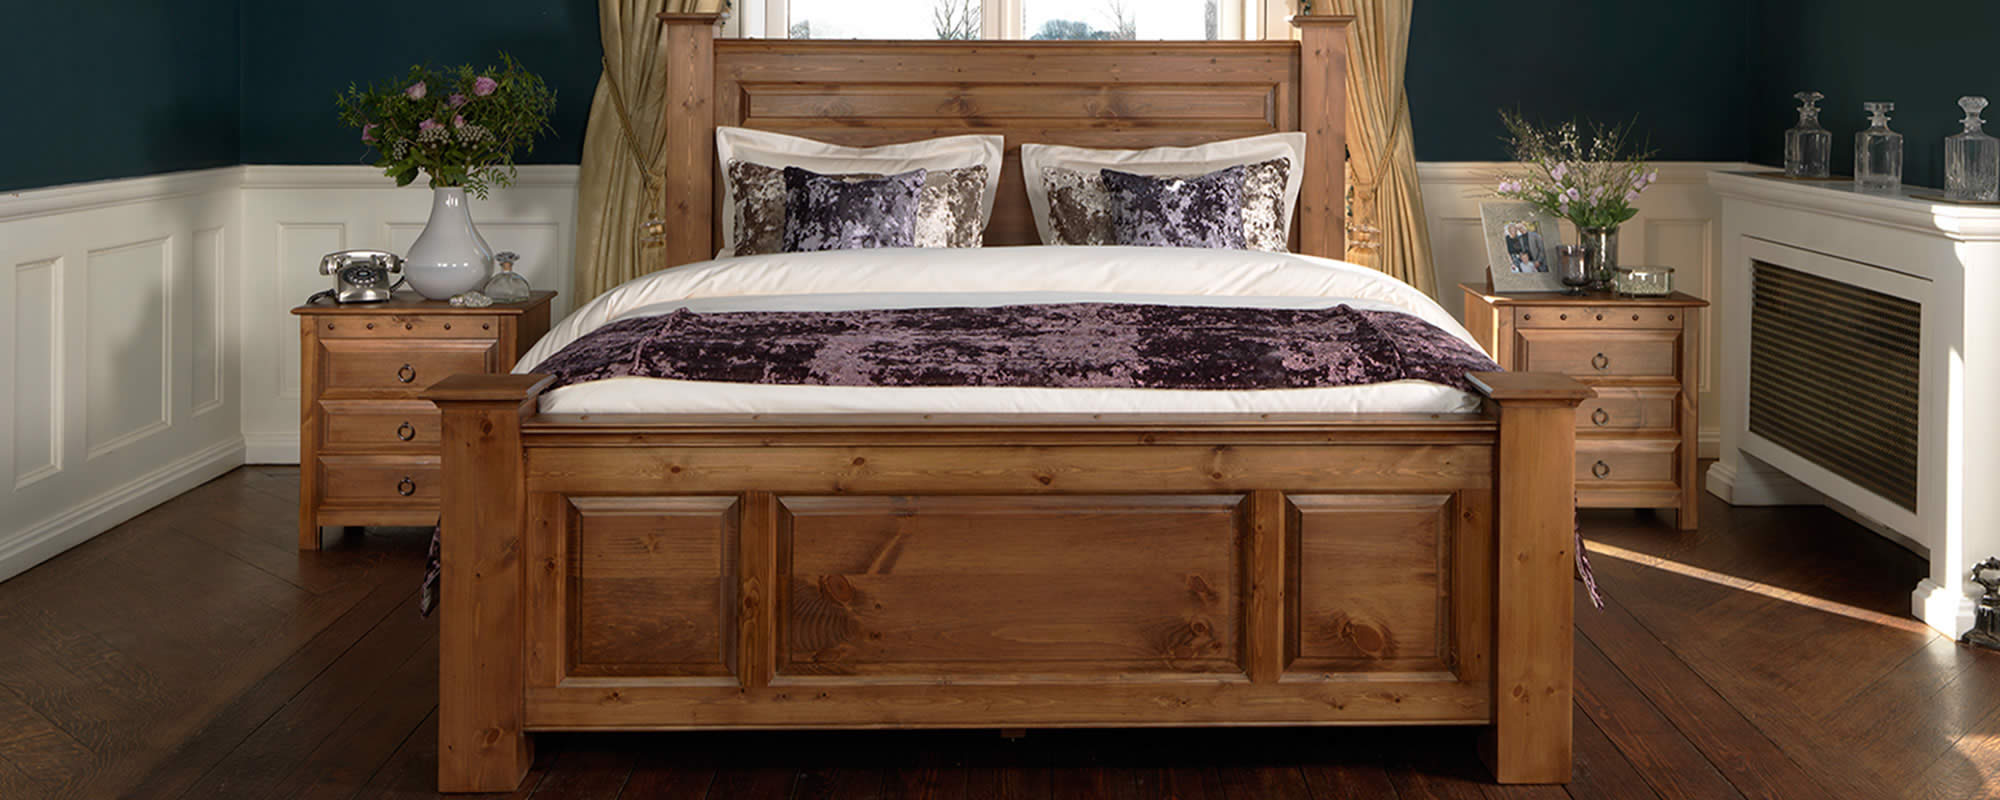 Wood Four Poster Beds Handmade Solid Oak Beds Sleigh Four Poster